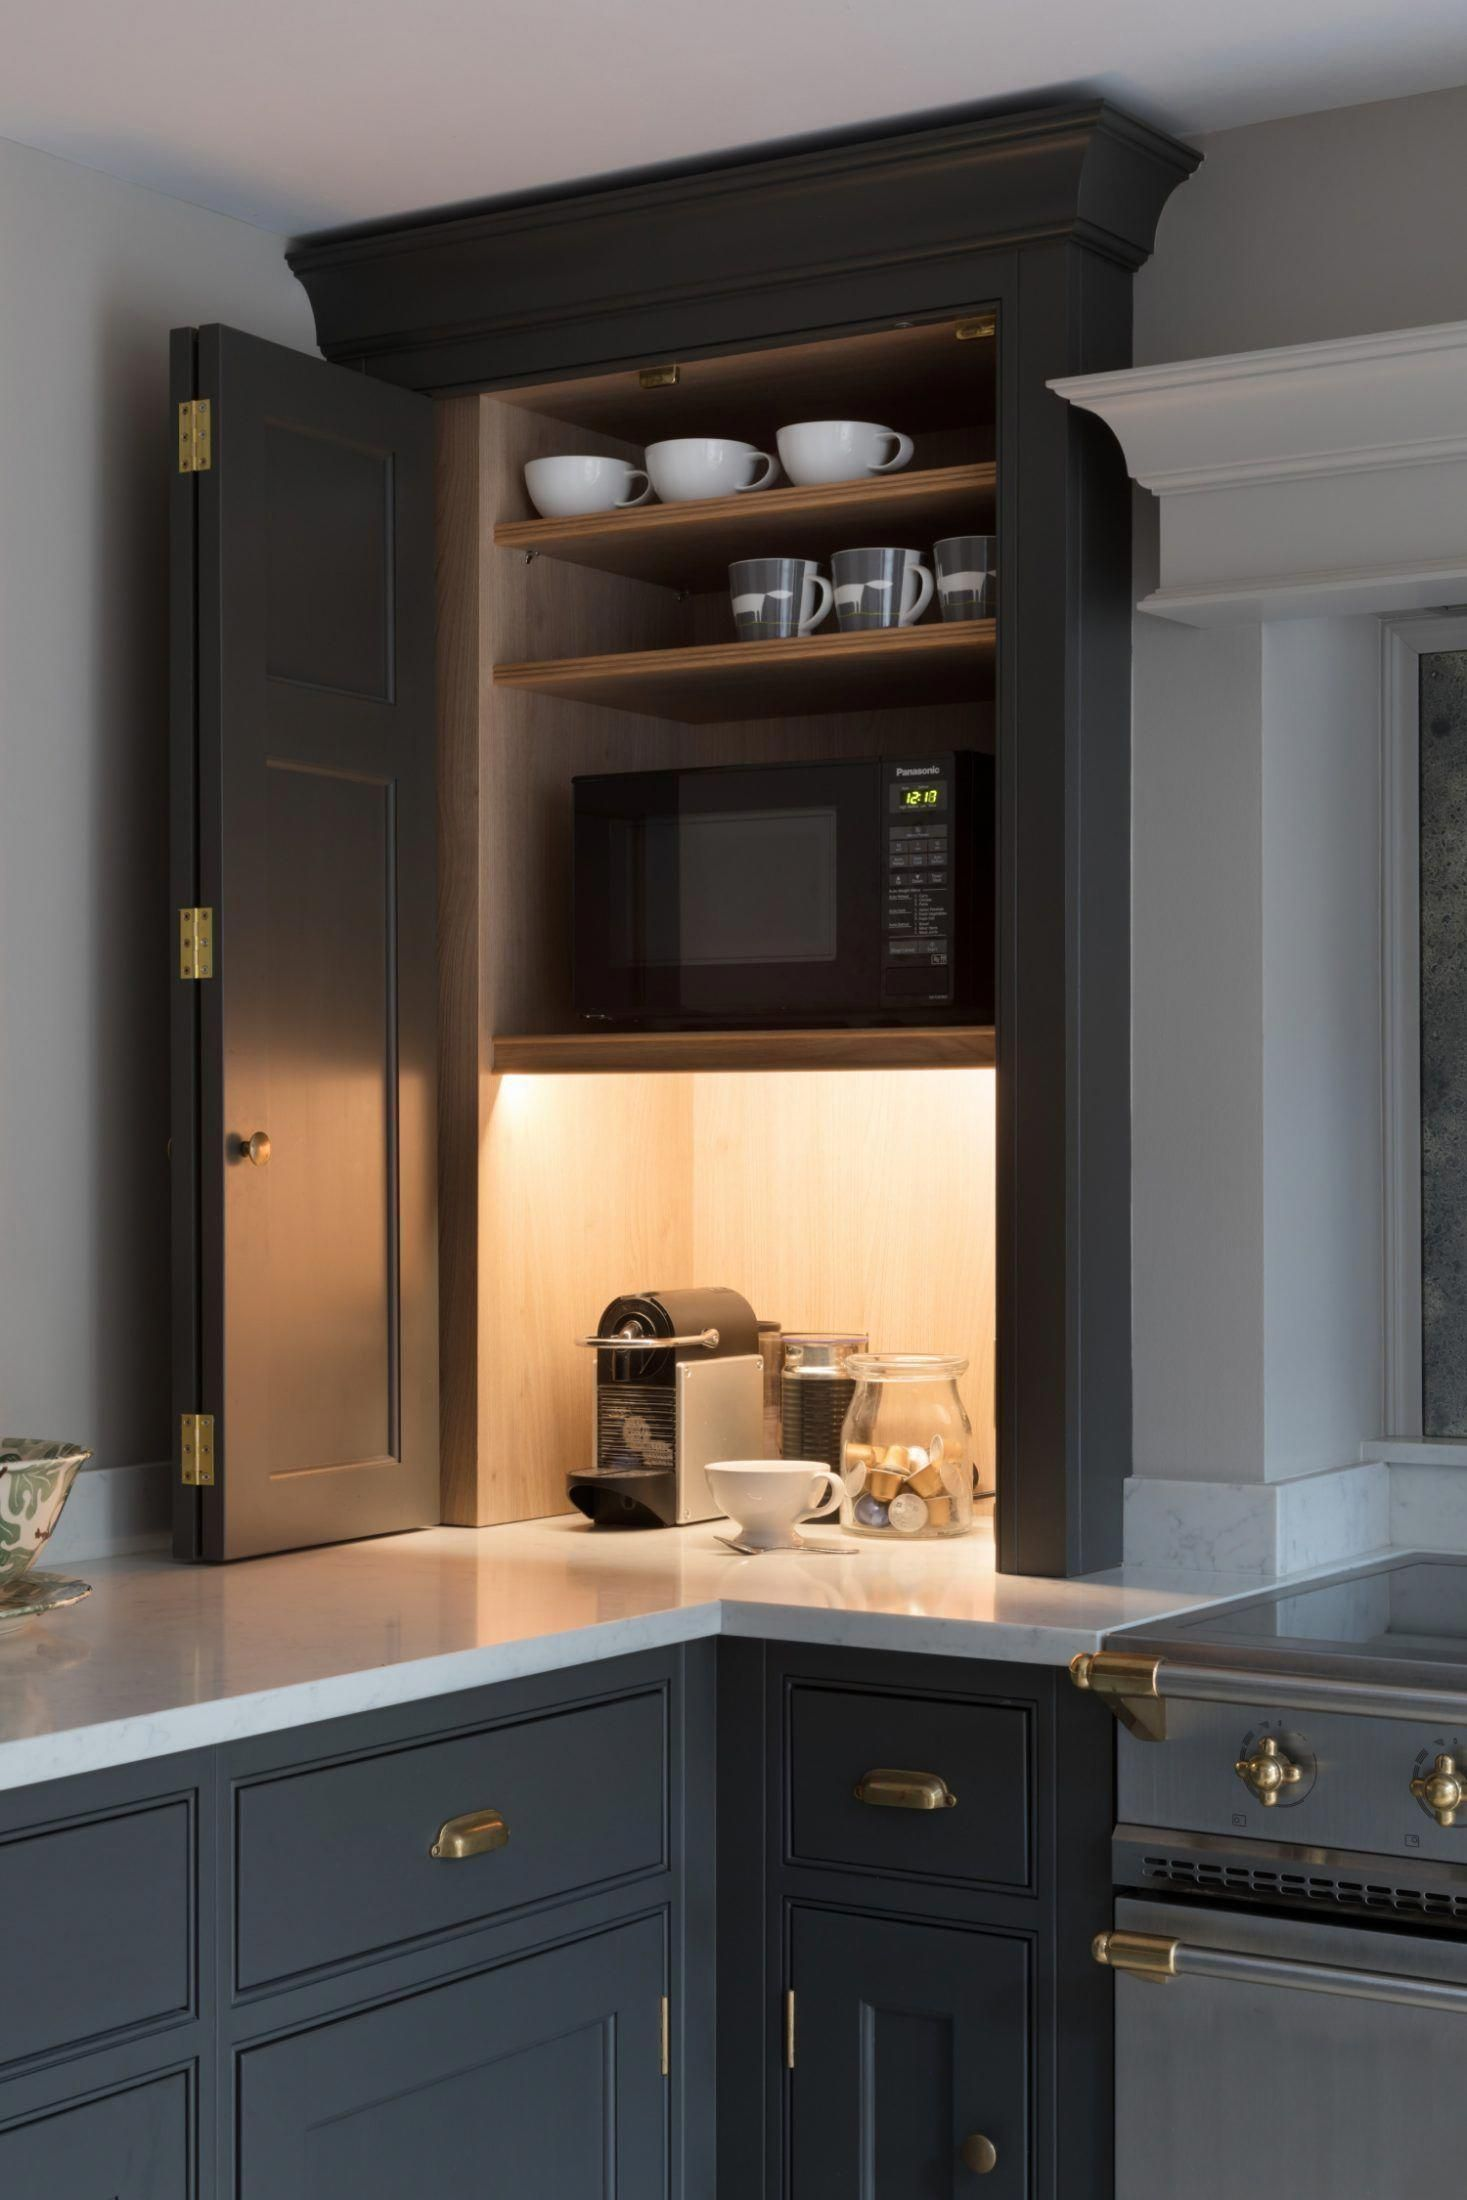 Throughout Time Each One In Every One Of Us Needs To Have Some Adjustments In Our L Kitchen Inspiration Design Kitchen Cabinet Design Farmhouse Kitchen Design